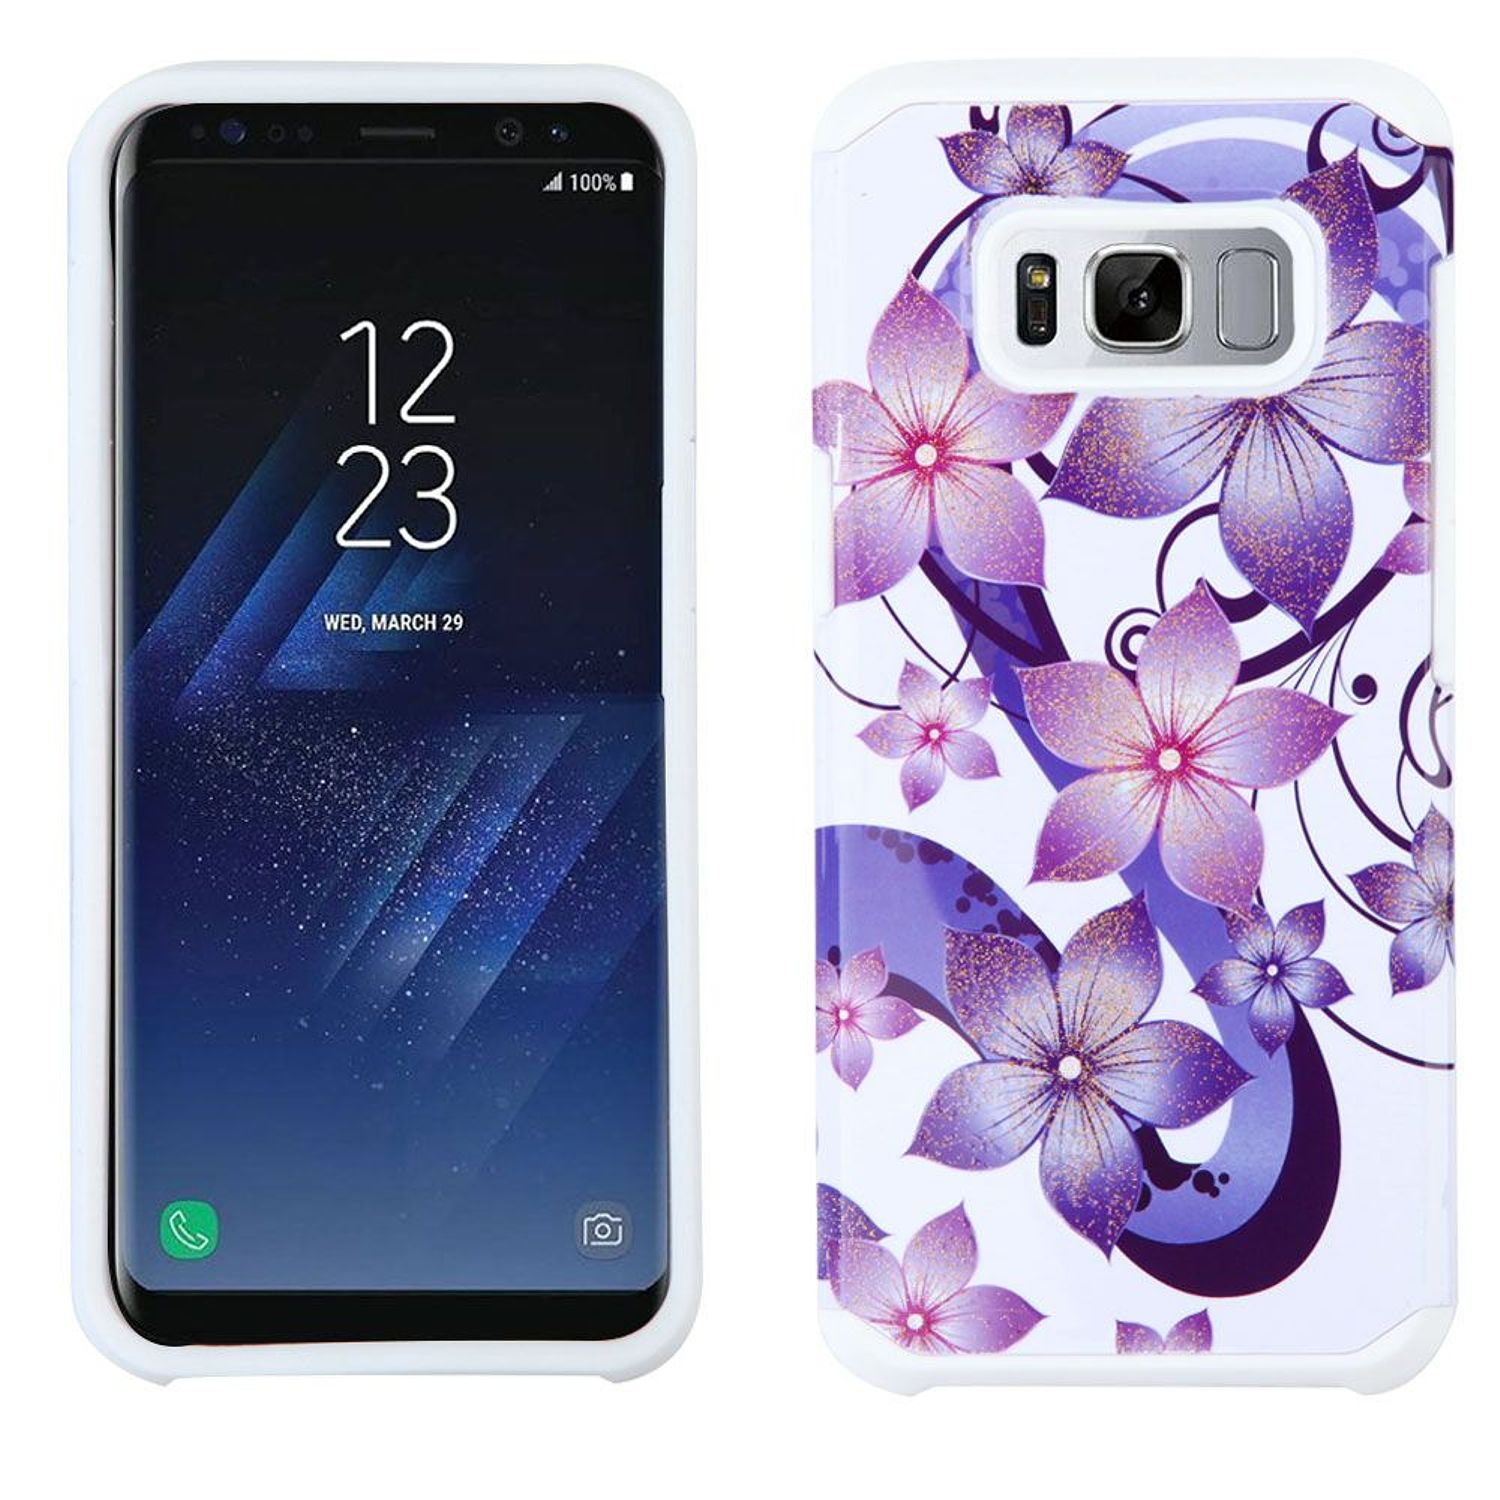 Samsung Galaxy S8+ Case, Samsung Galaxy S8 Plus Case, by Insten Flowers Dual Layer [Shock Absorbing] Hybrid Hard Plastic/Soft TPU Rubber Case Phone Cover For Samsung Galaxy S8 Plus S8+, Purple/White